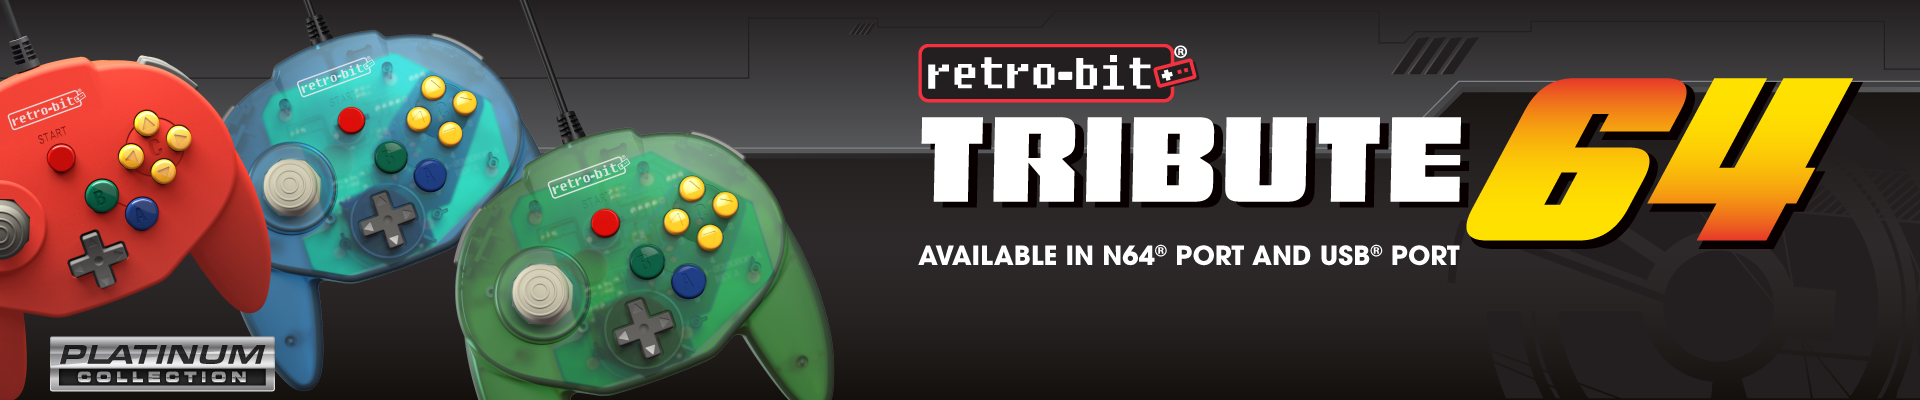 Tribute64, N64, USB, Retro-Bit, Platinum Collection